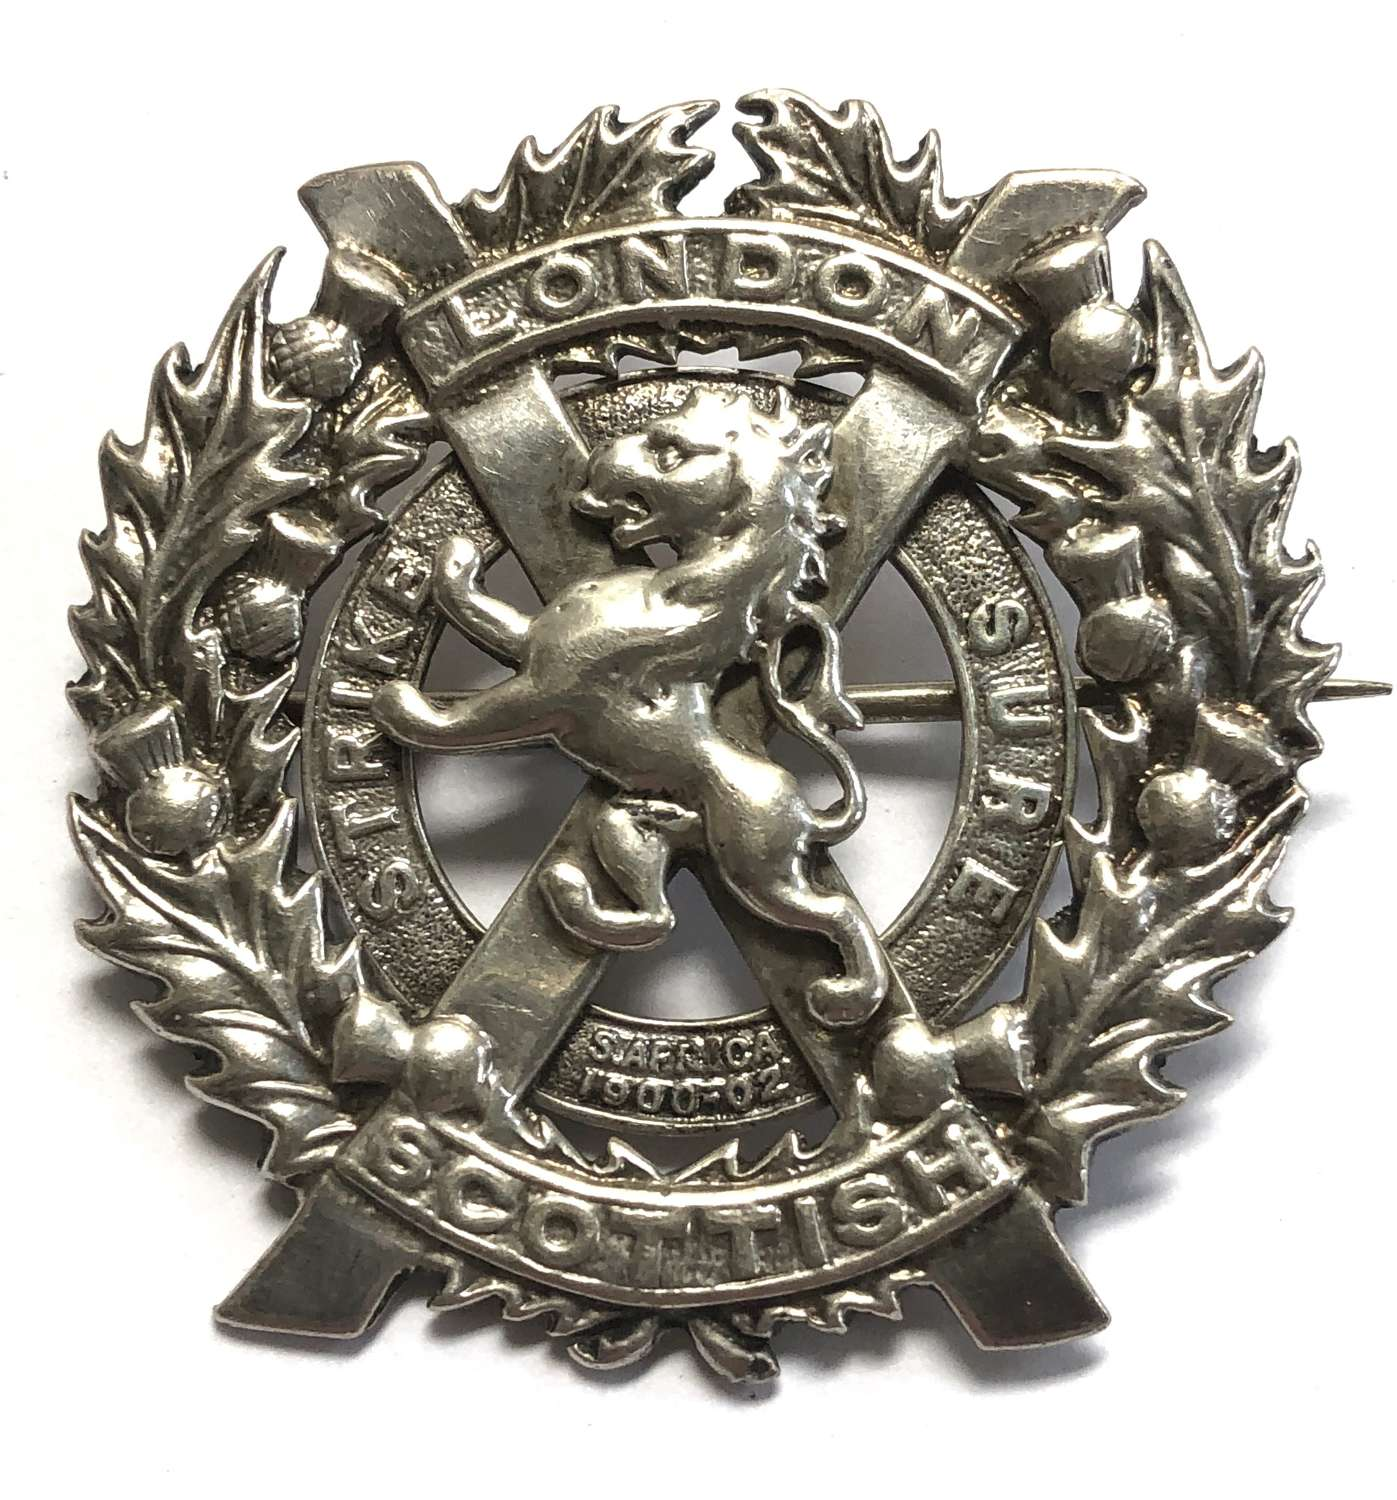 London Scottish Officer's 1938 HM silver glengarry badge.